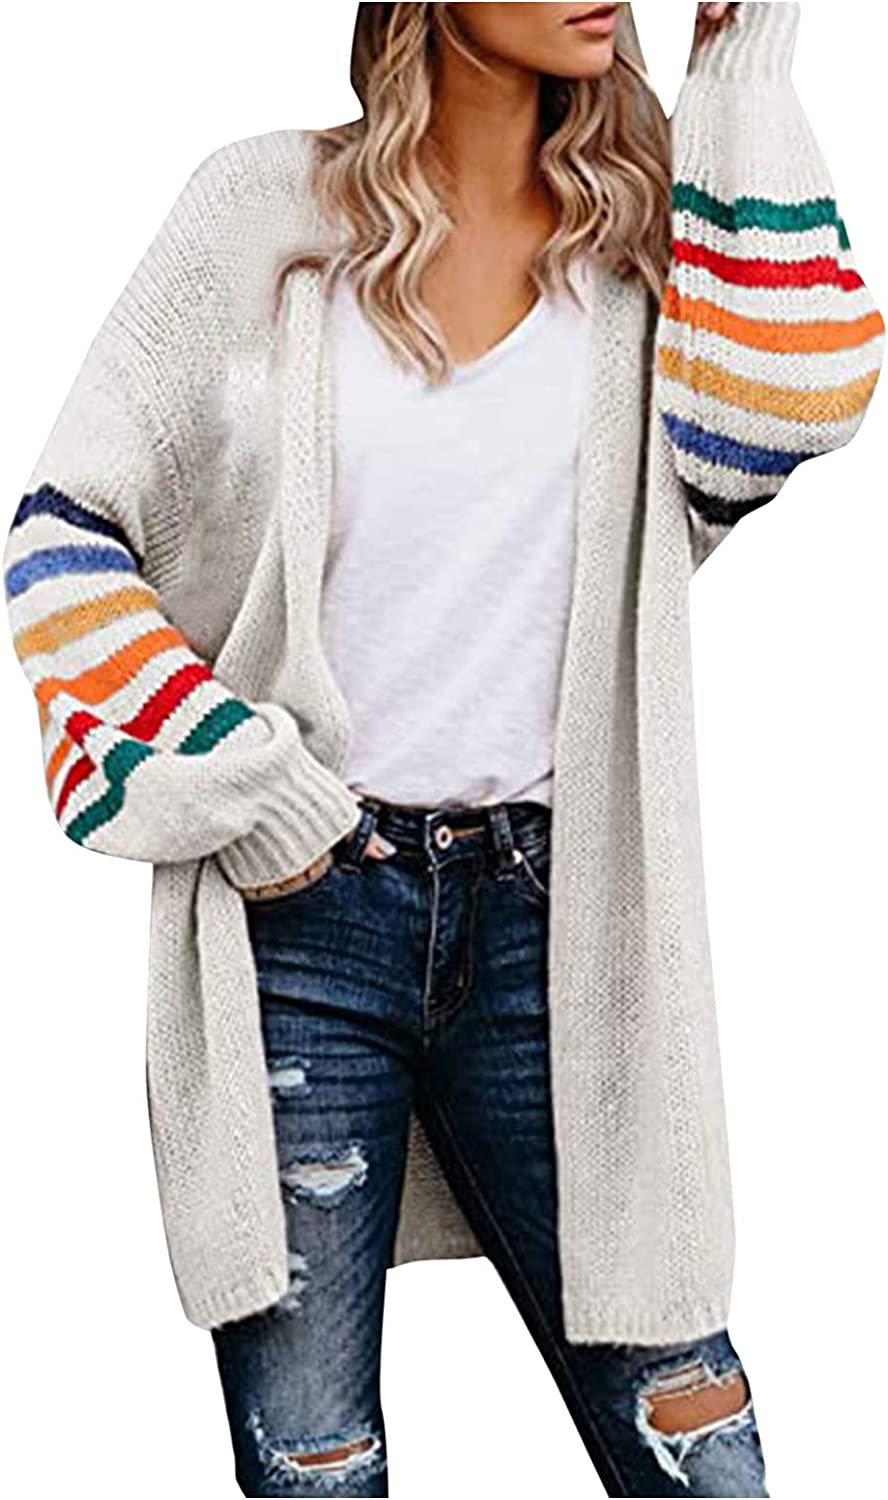 UBST New Womens Stripe Long Sleeve Knit Cardigans Coat,2021 Autumn Fashion Casual Warm Sweater Tops Loose Fit